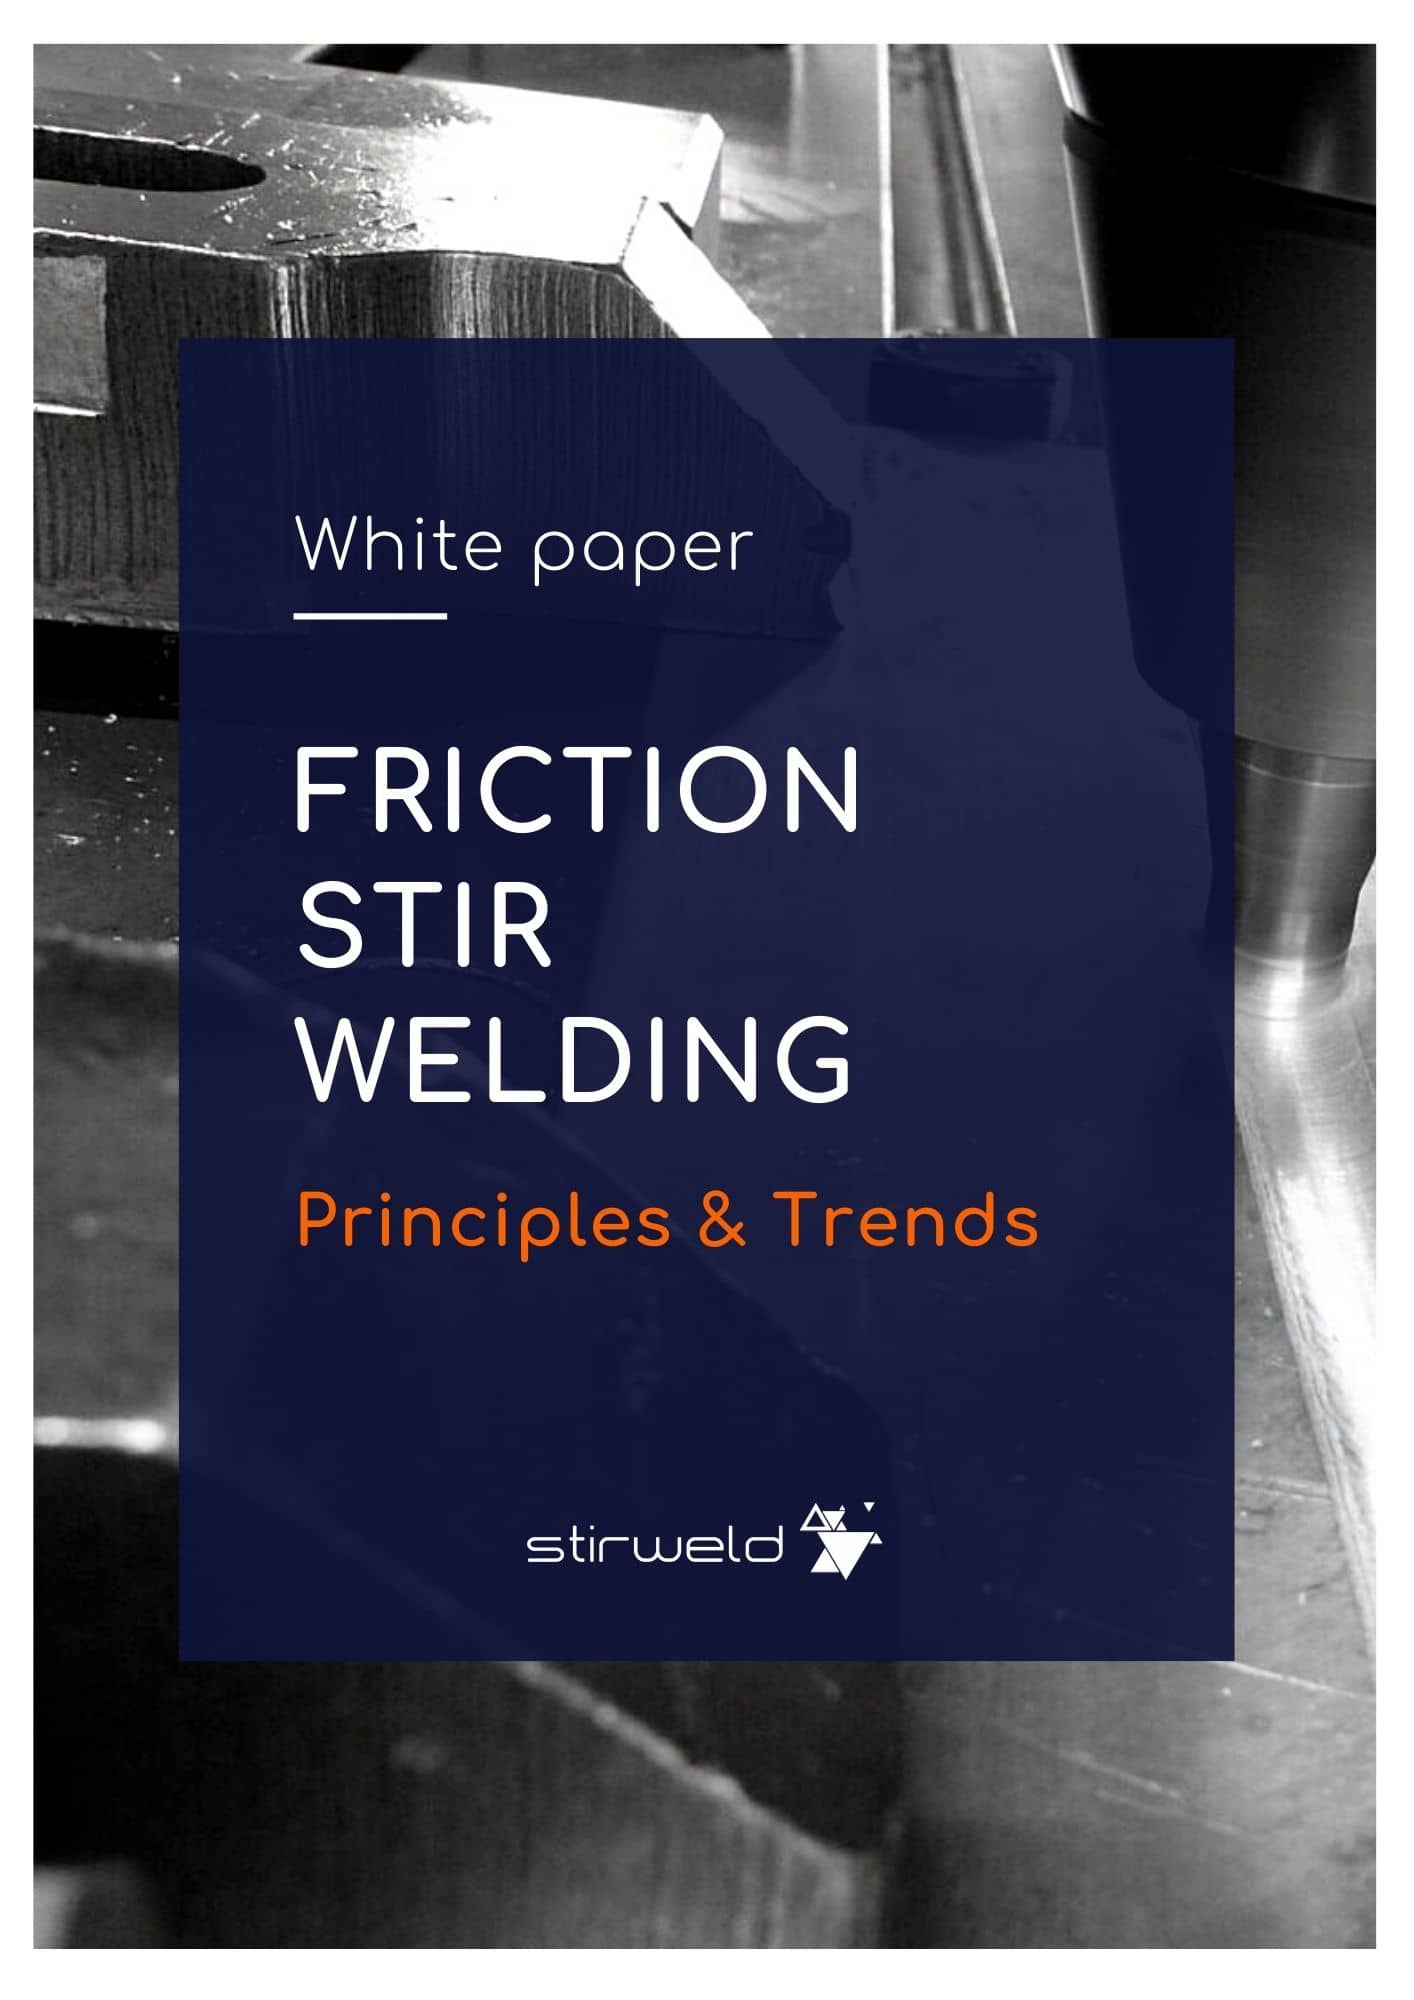 Friction Stir Welding technology